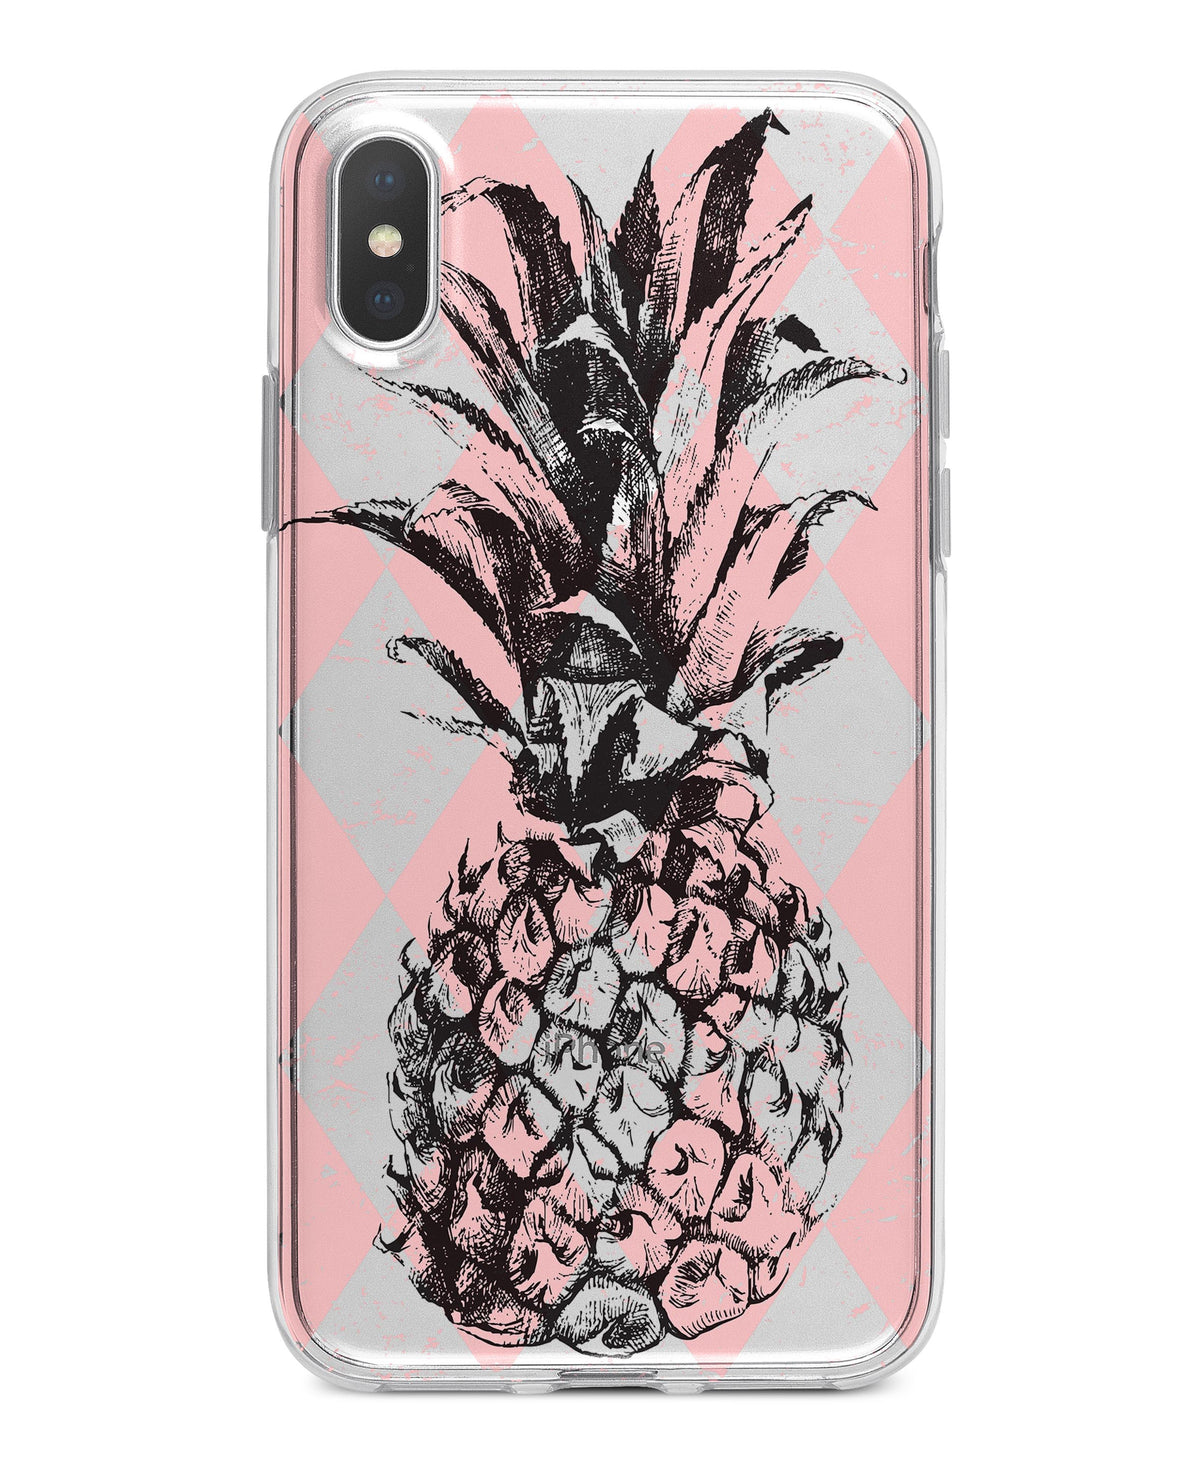 quality design 128dc a4f67 Tropical Summer Pink Pineapple v1 - Crystal Clear Hard Case for the iPhone  XS MAX, XS & More (ALL AVAILABLE)